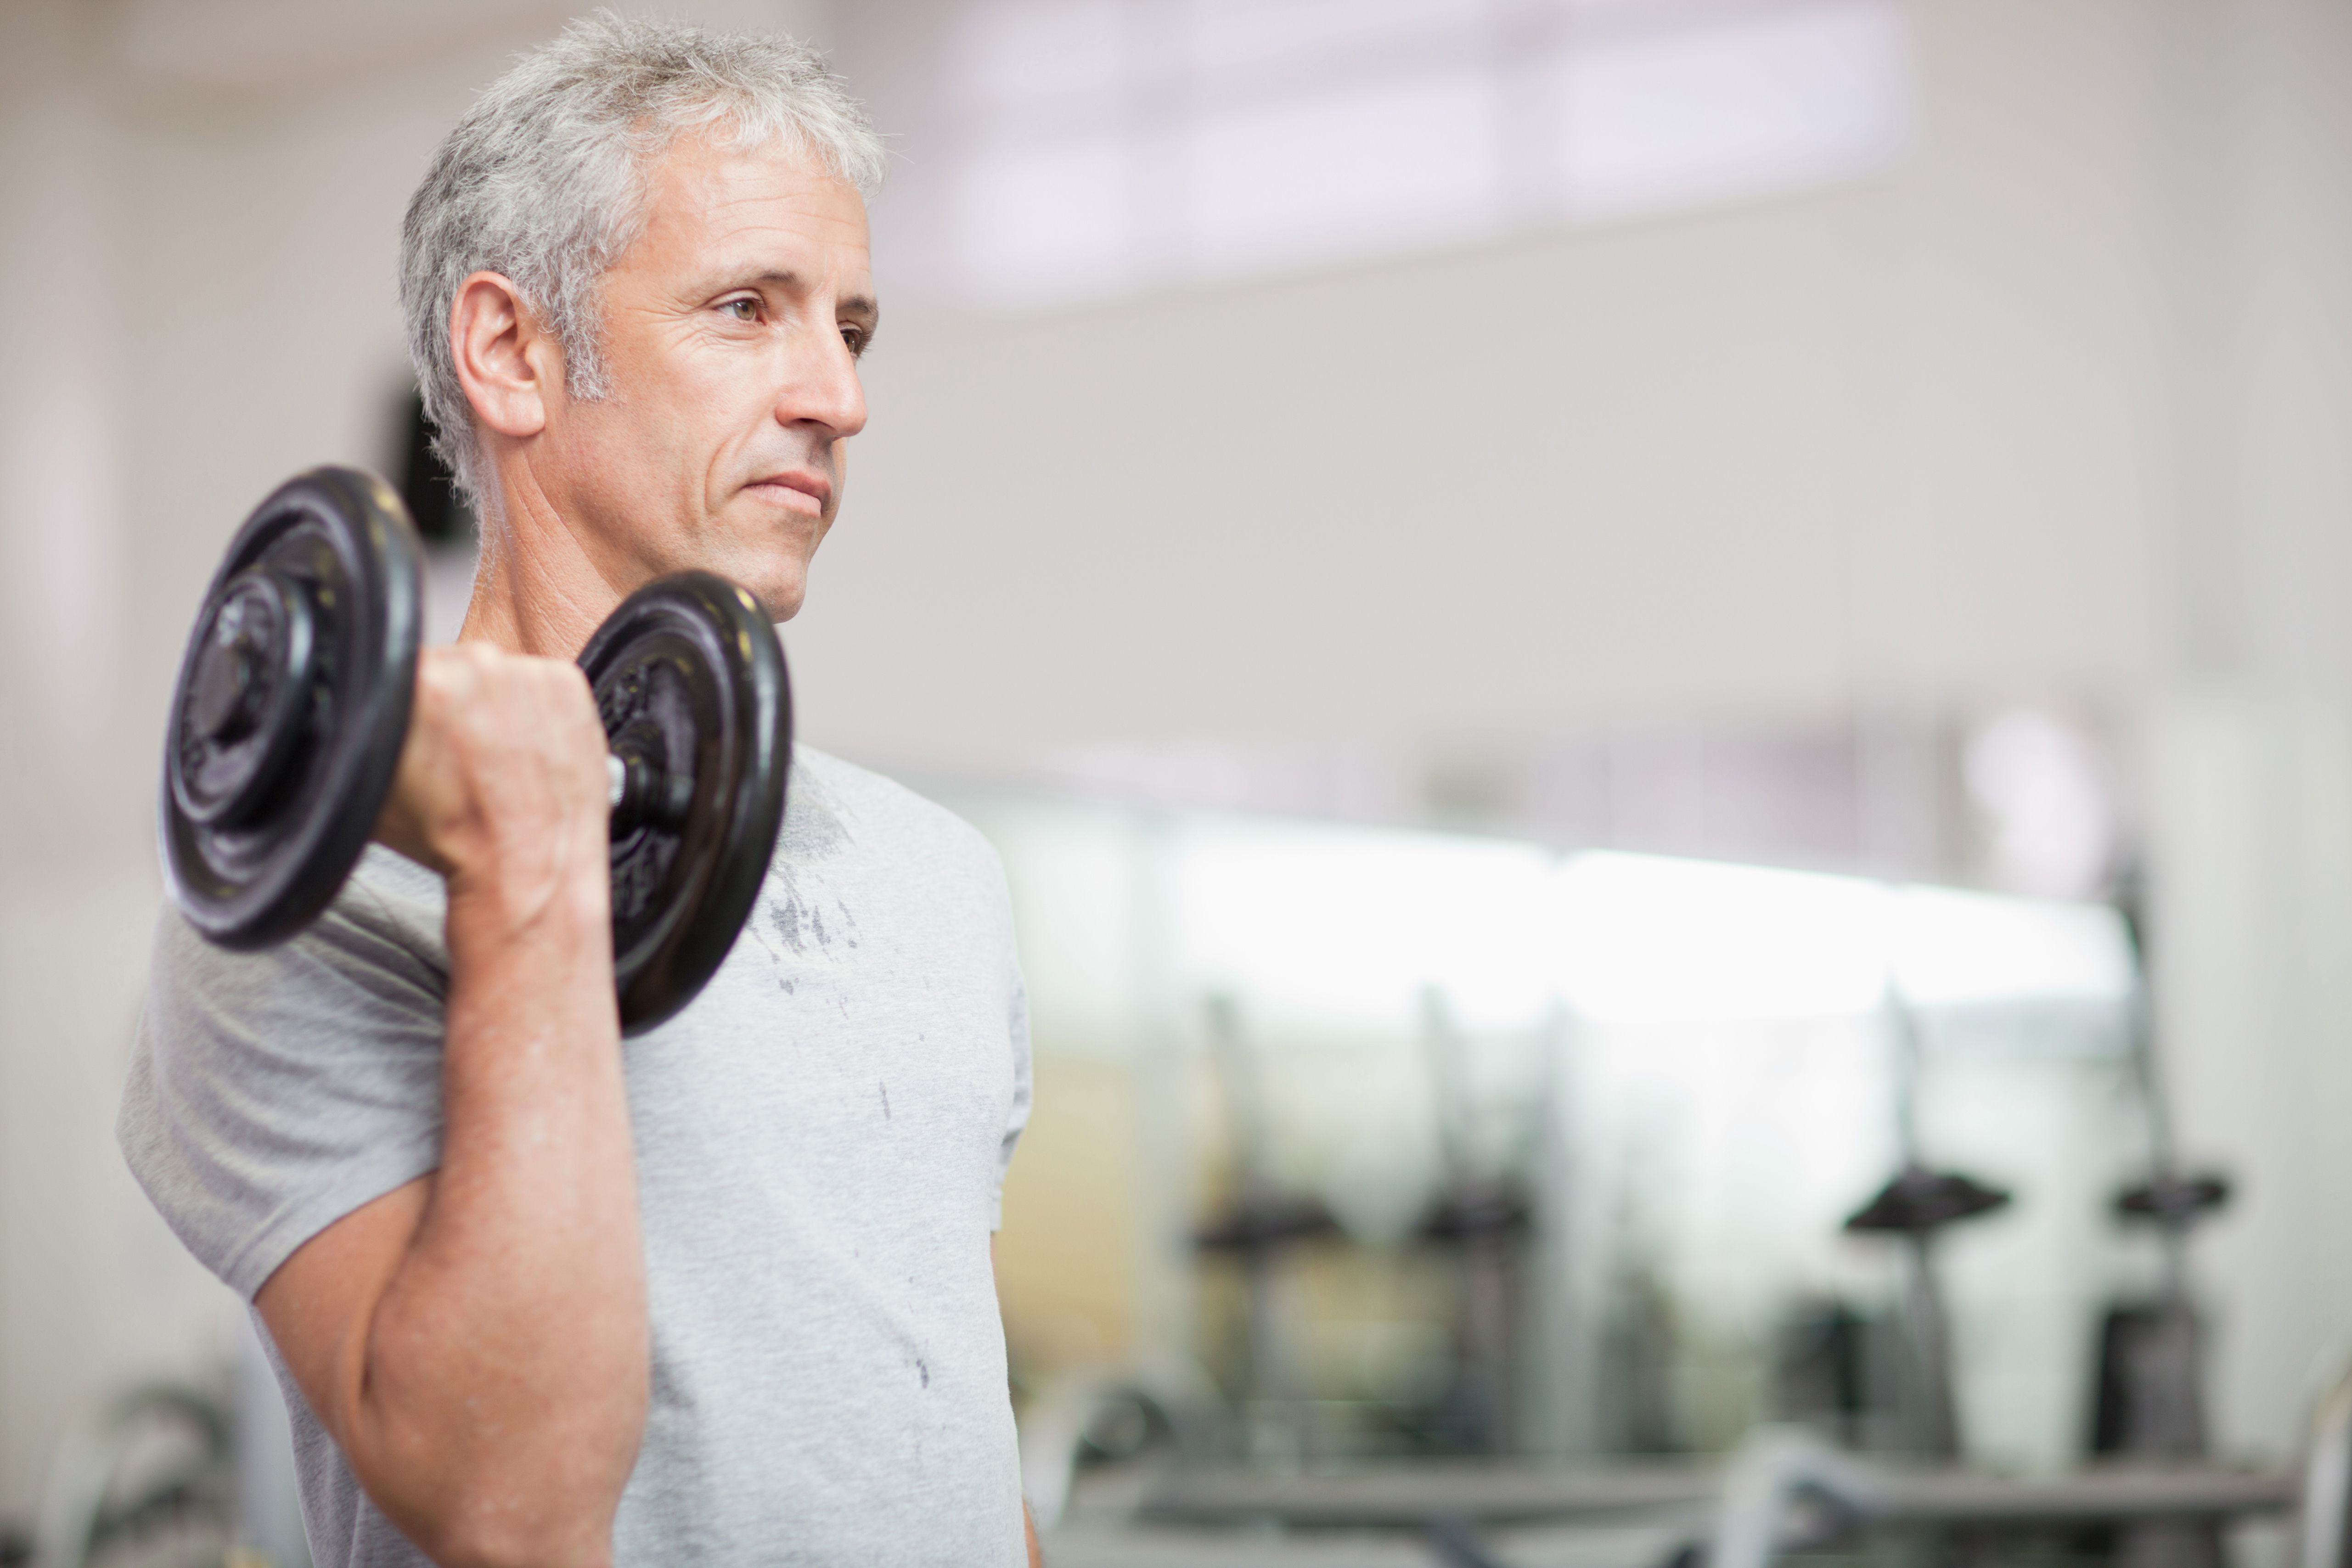 Portrait of man holding barbell in gymnasium